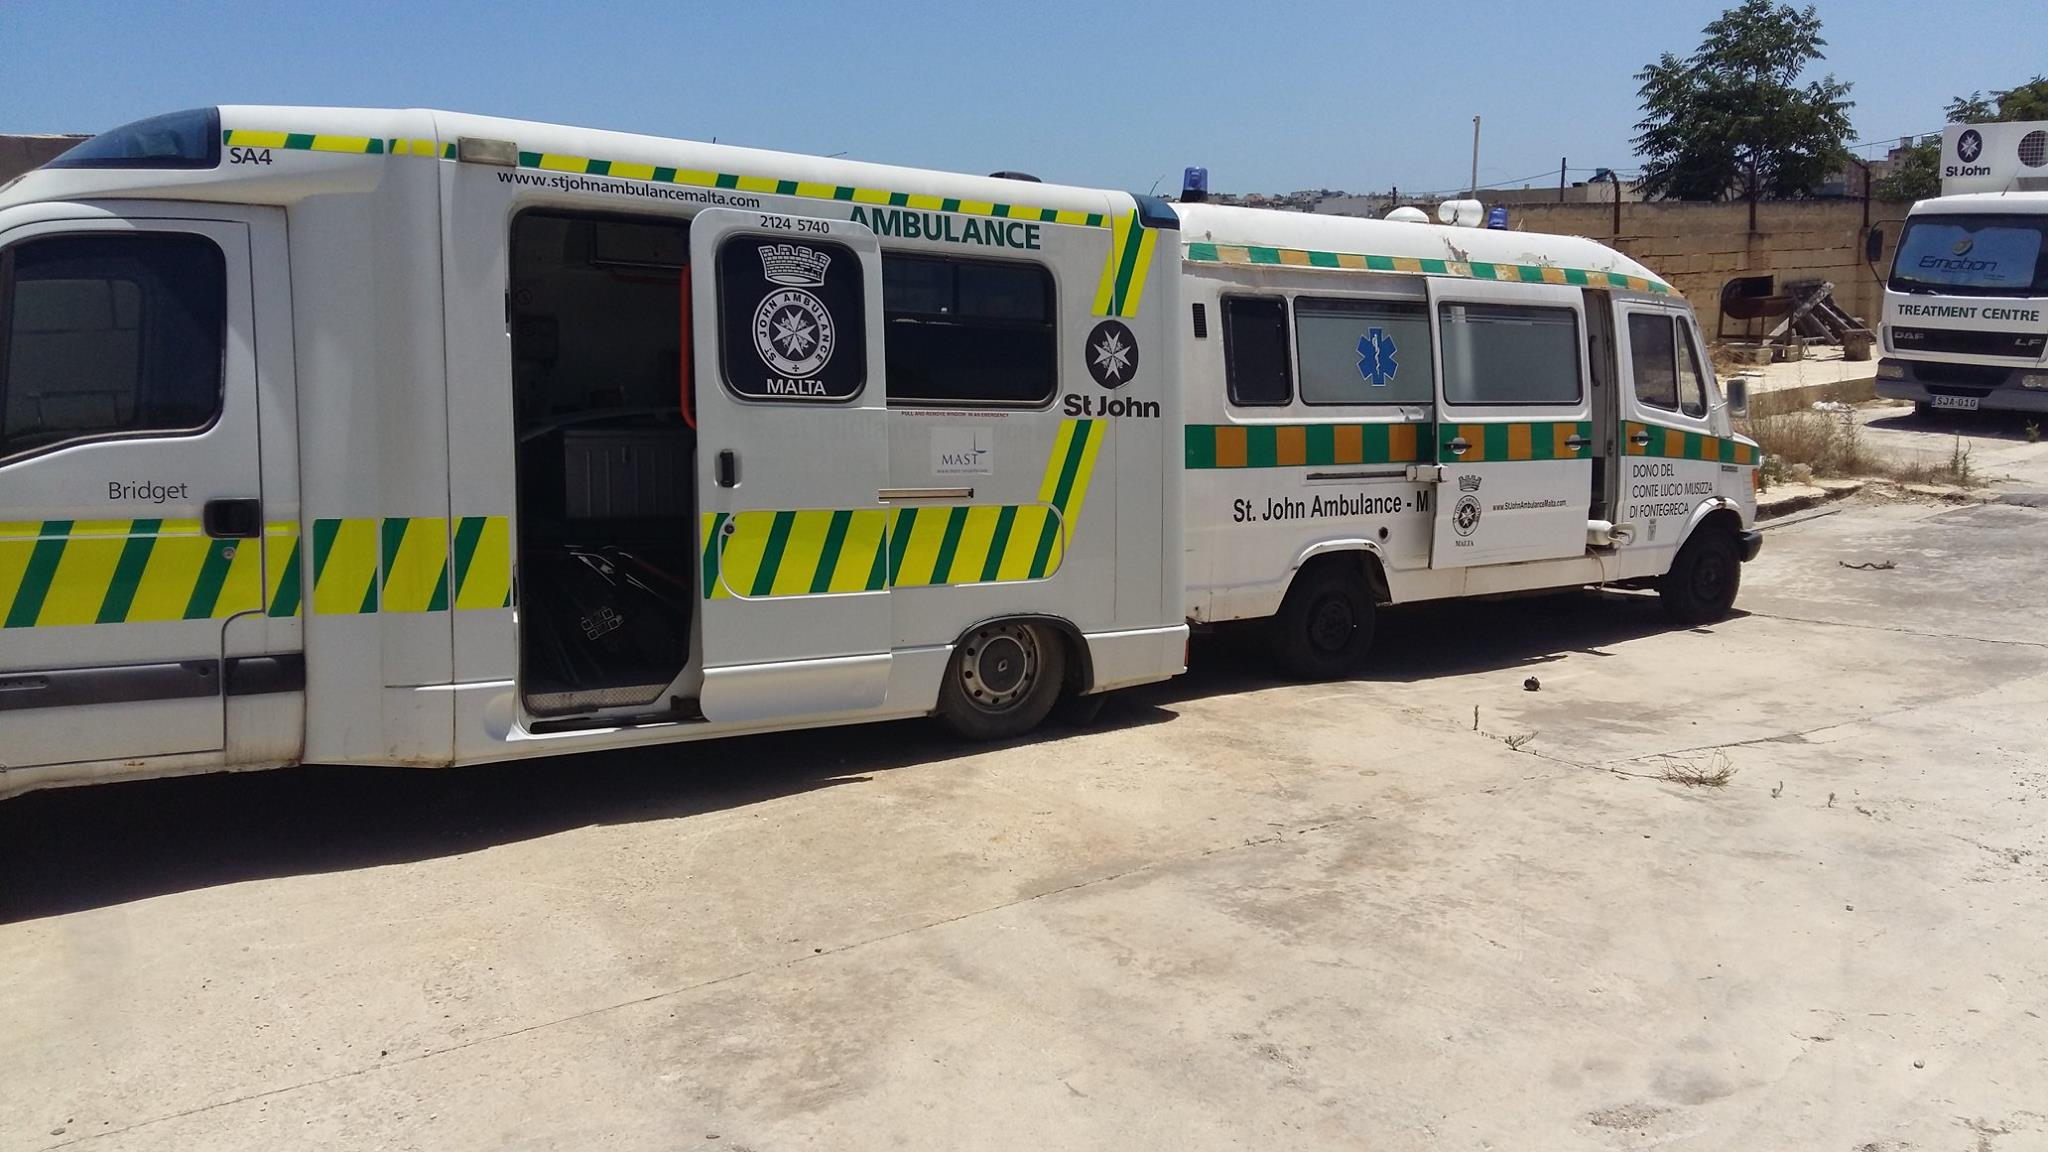 Malta, St John Ambulance victim of vandalism. They need your help, now!